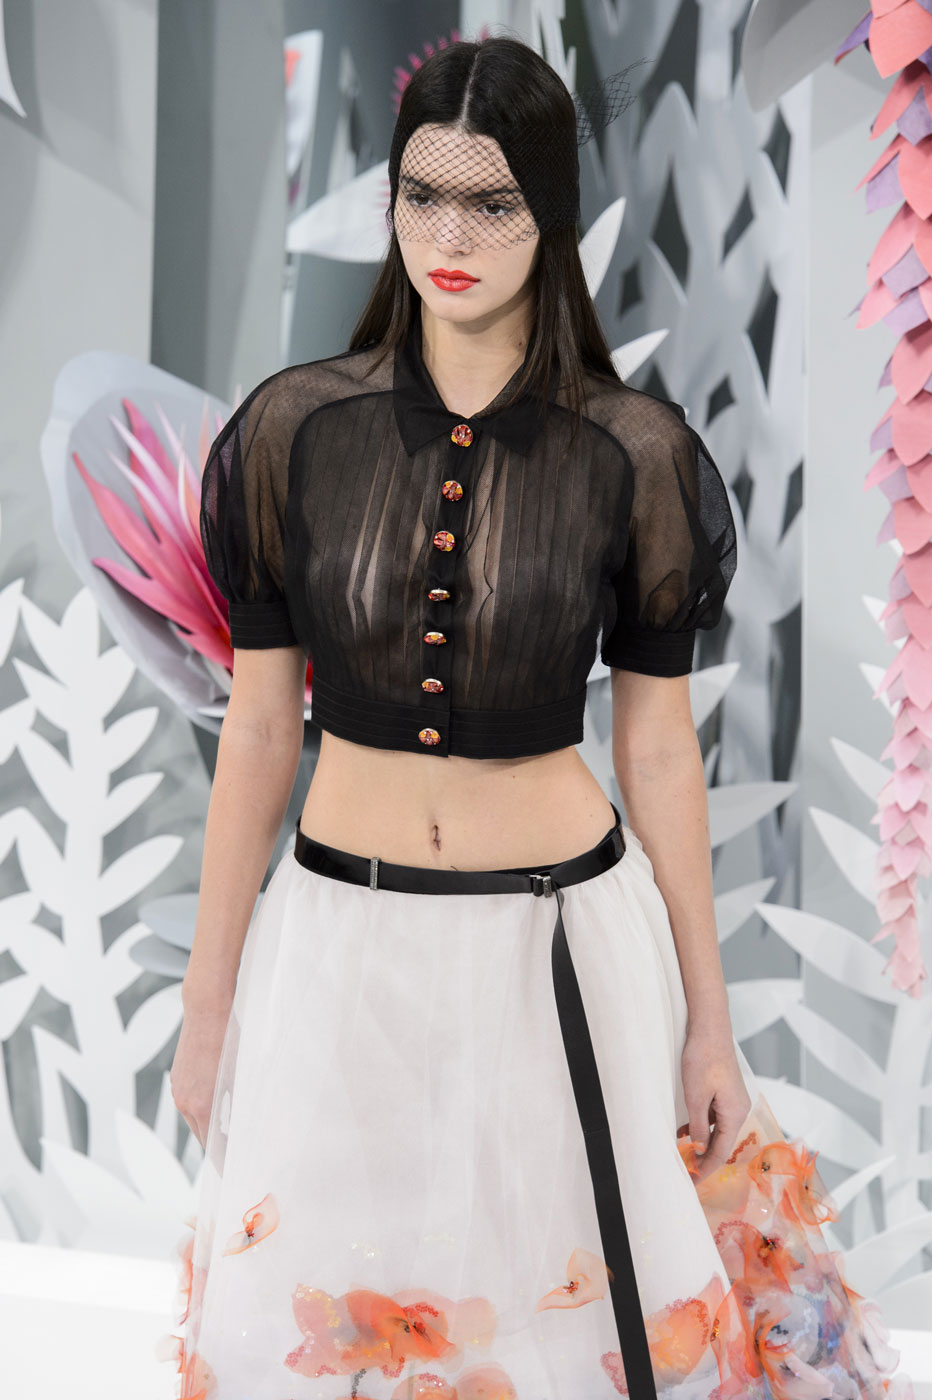 Chanel-fashion-runway-show-haute-couture-paris-spring-summer-2015-the-impression-098